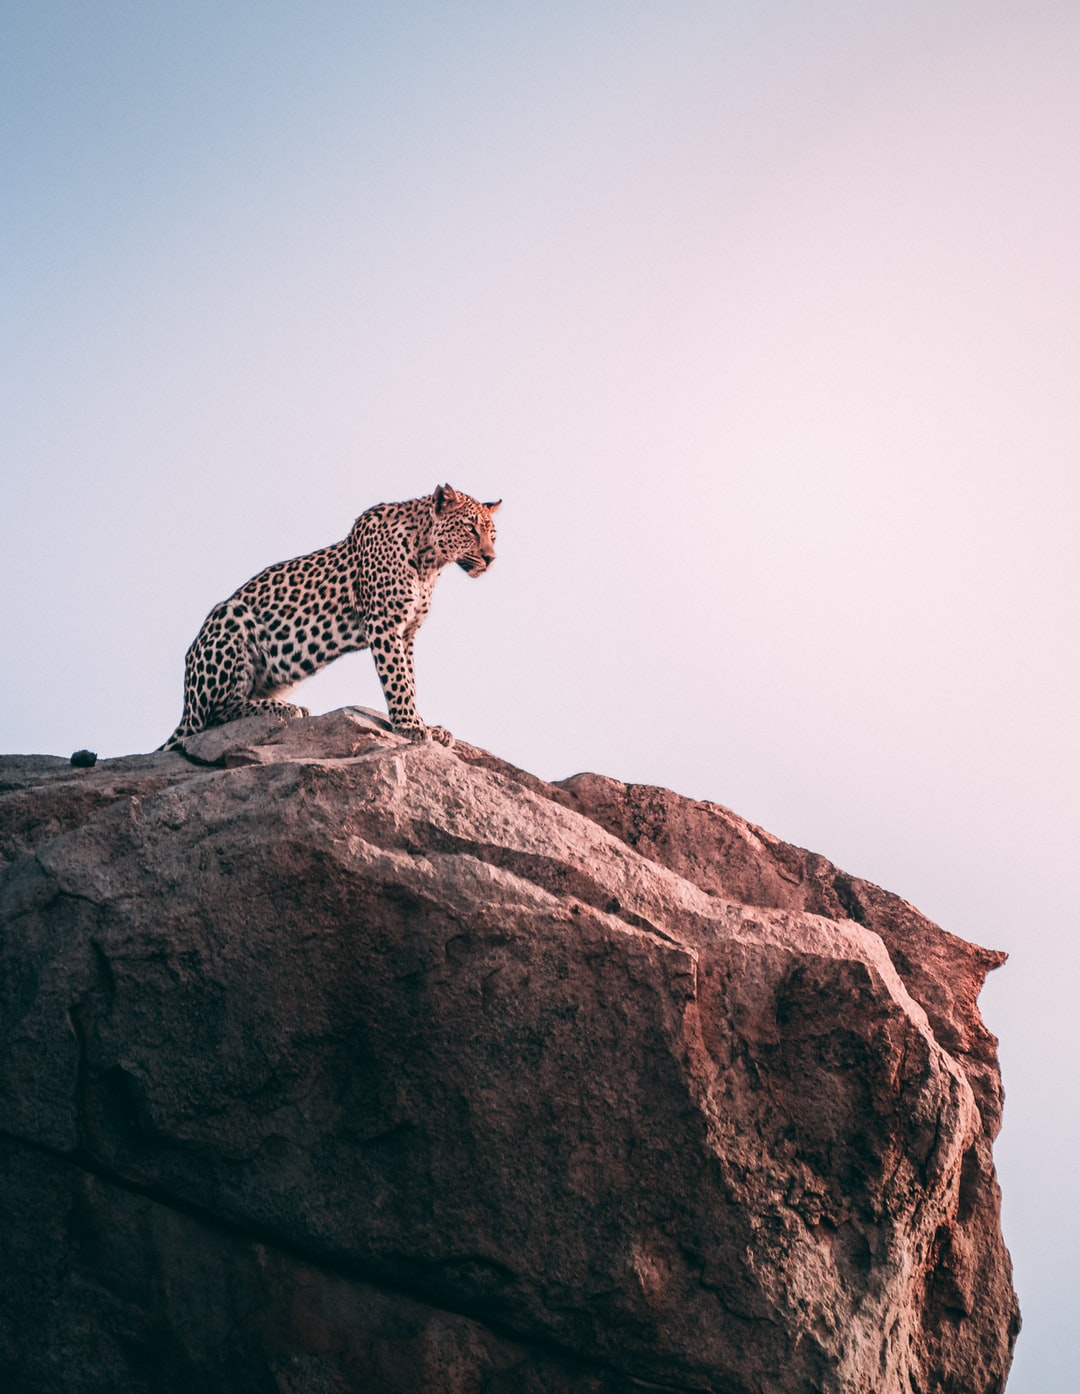 I spotted Tsira on a trip to the Kruger National Park, South Africa. It's not every day you get a leopard to pose like she did.